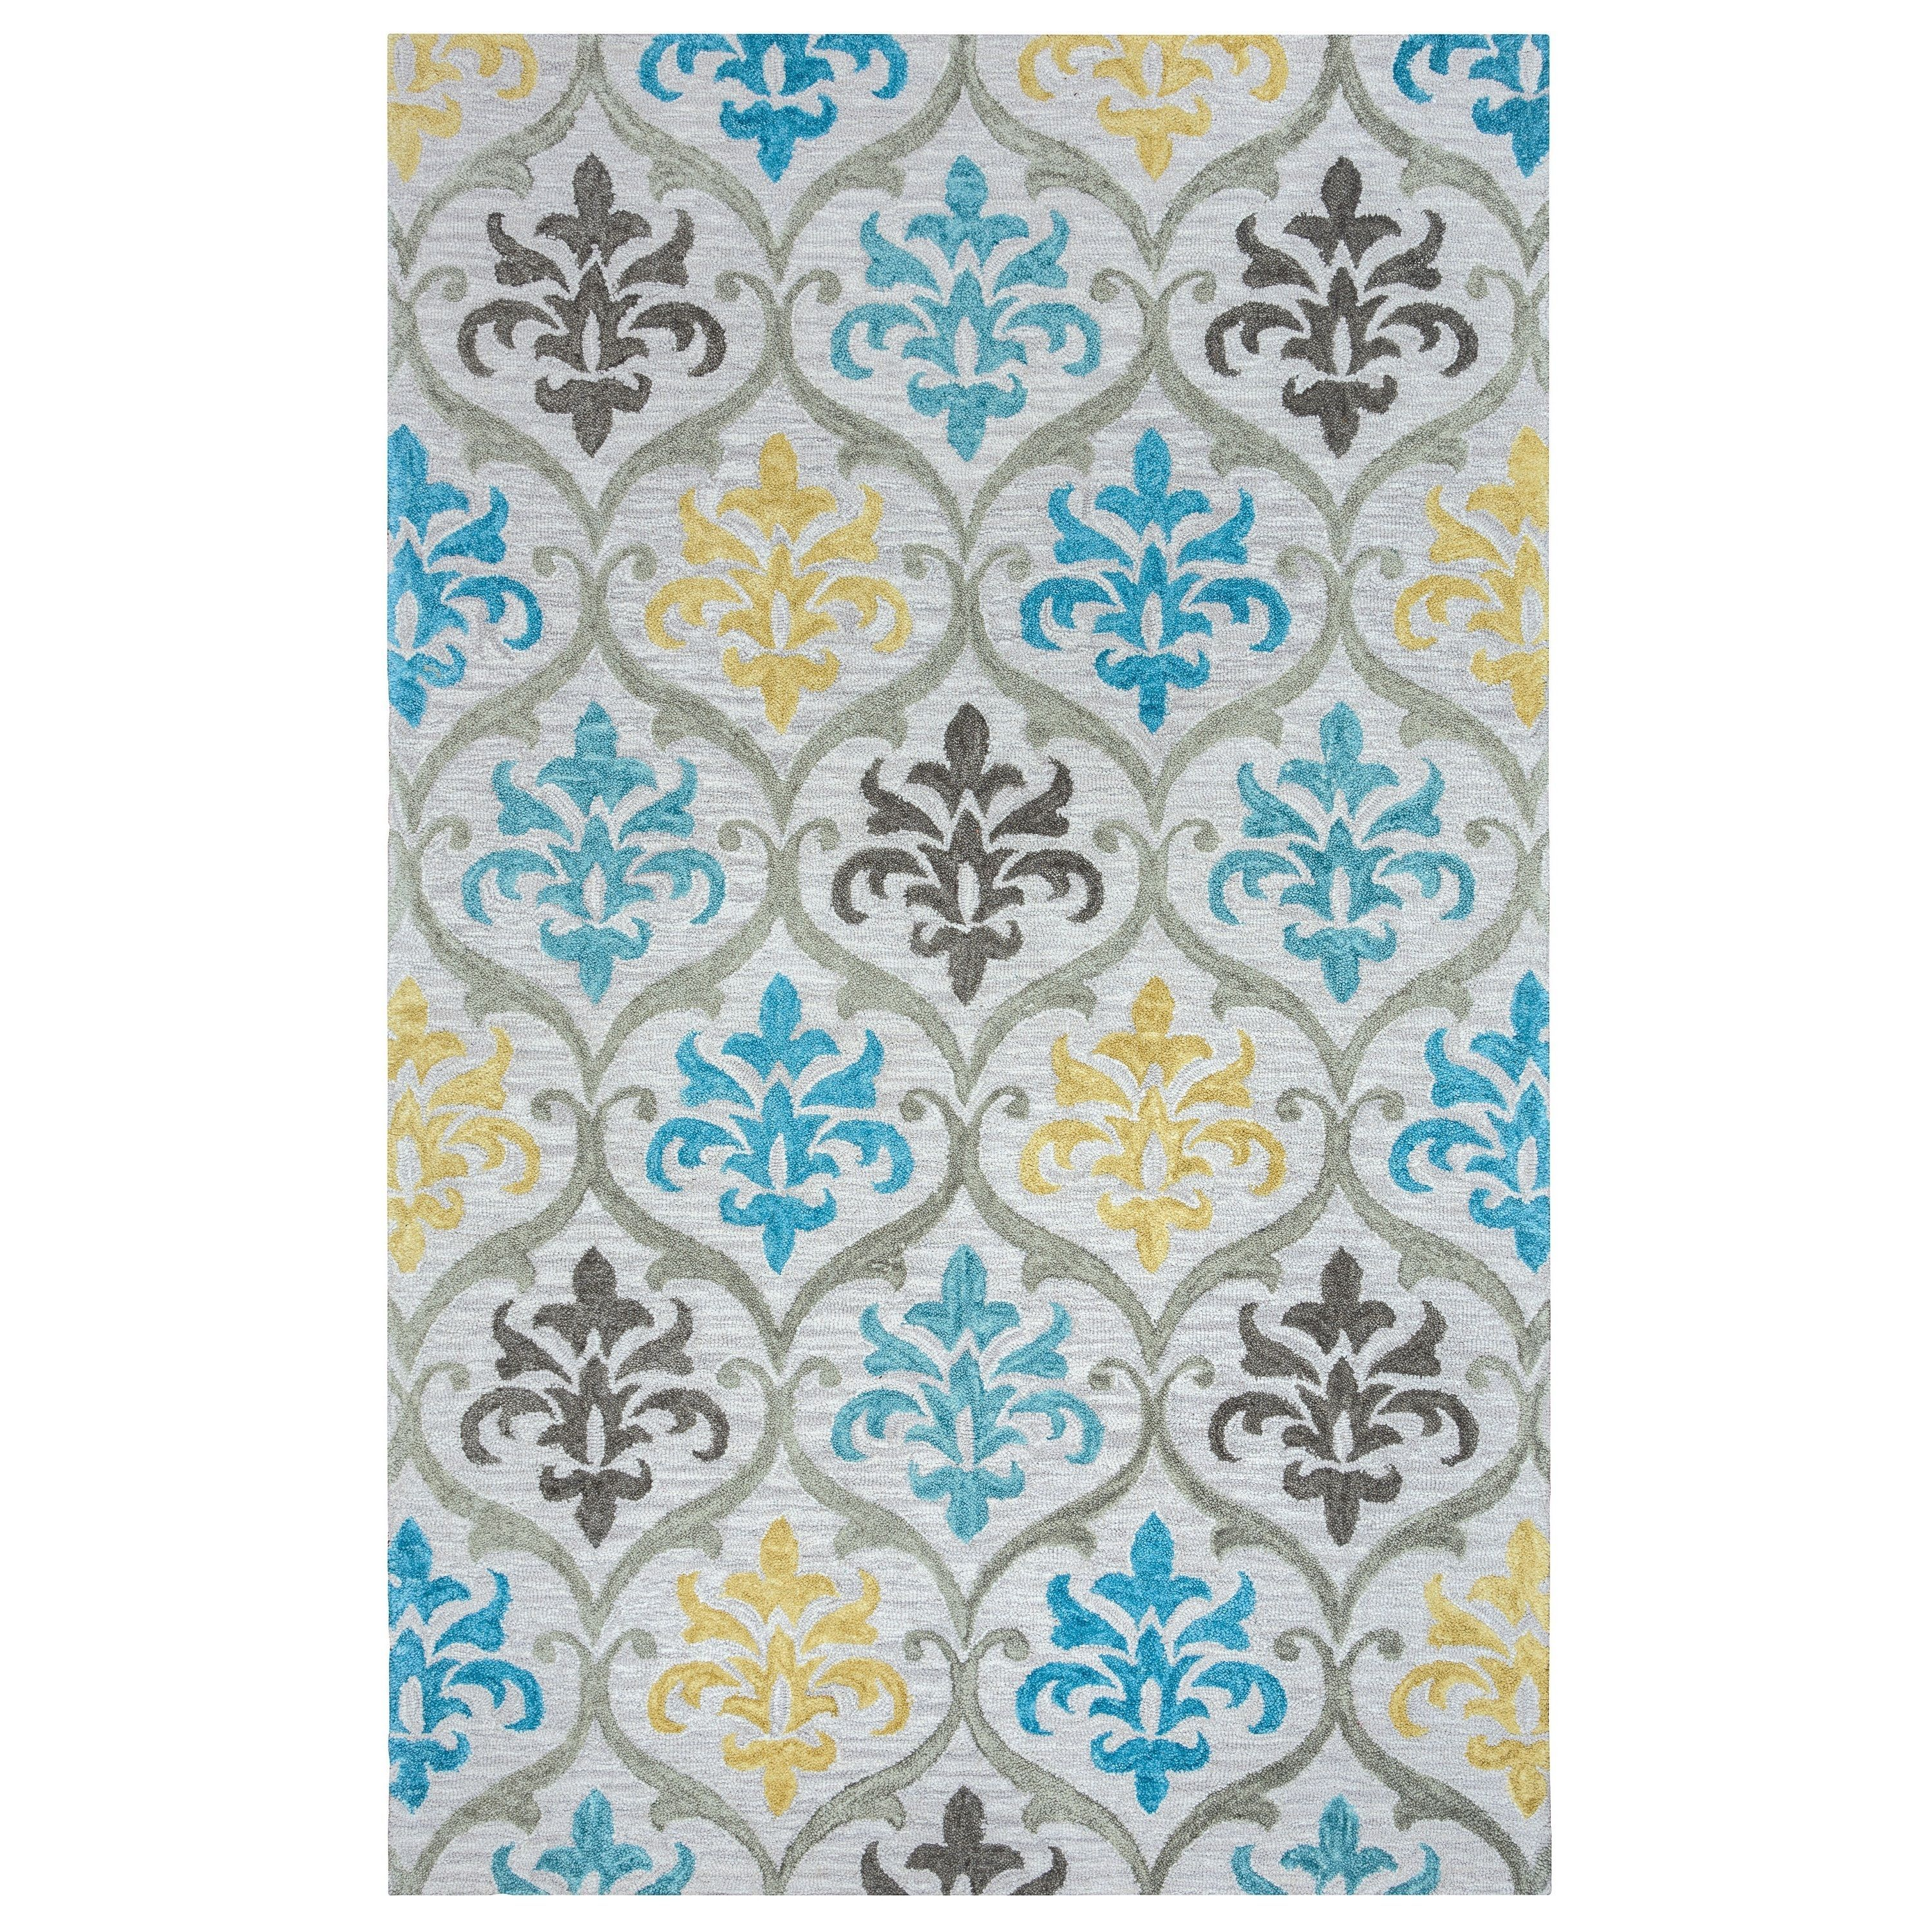 Rizzy Home Lancaster Collection LS9573 Area Rug (8' x 10') (LS9573-8'x10'), Multi, Size 8' x 10' (Cotton, Ornamental)